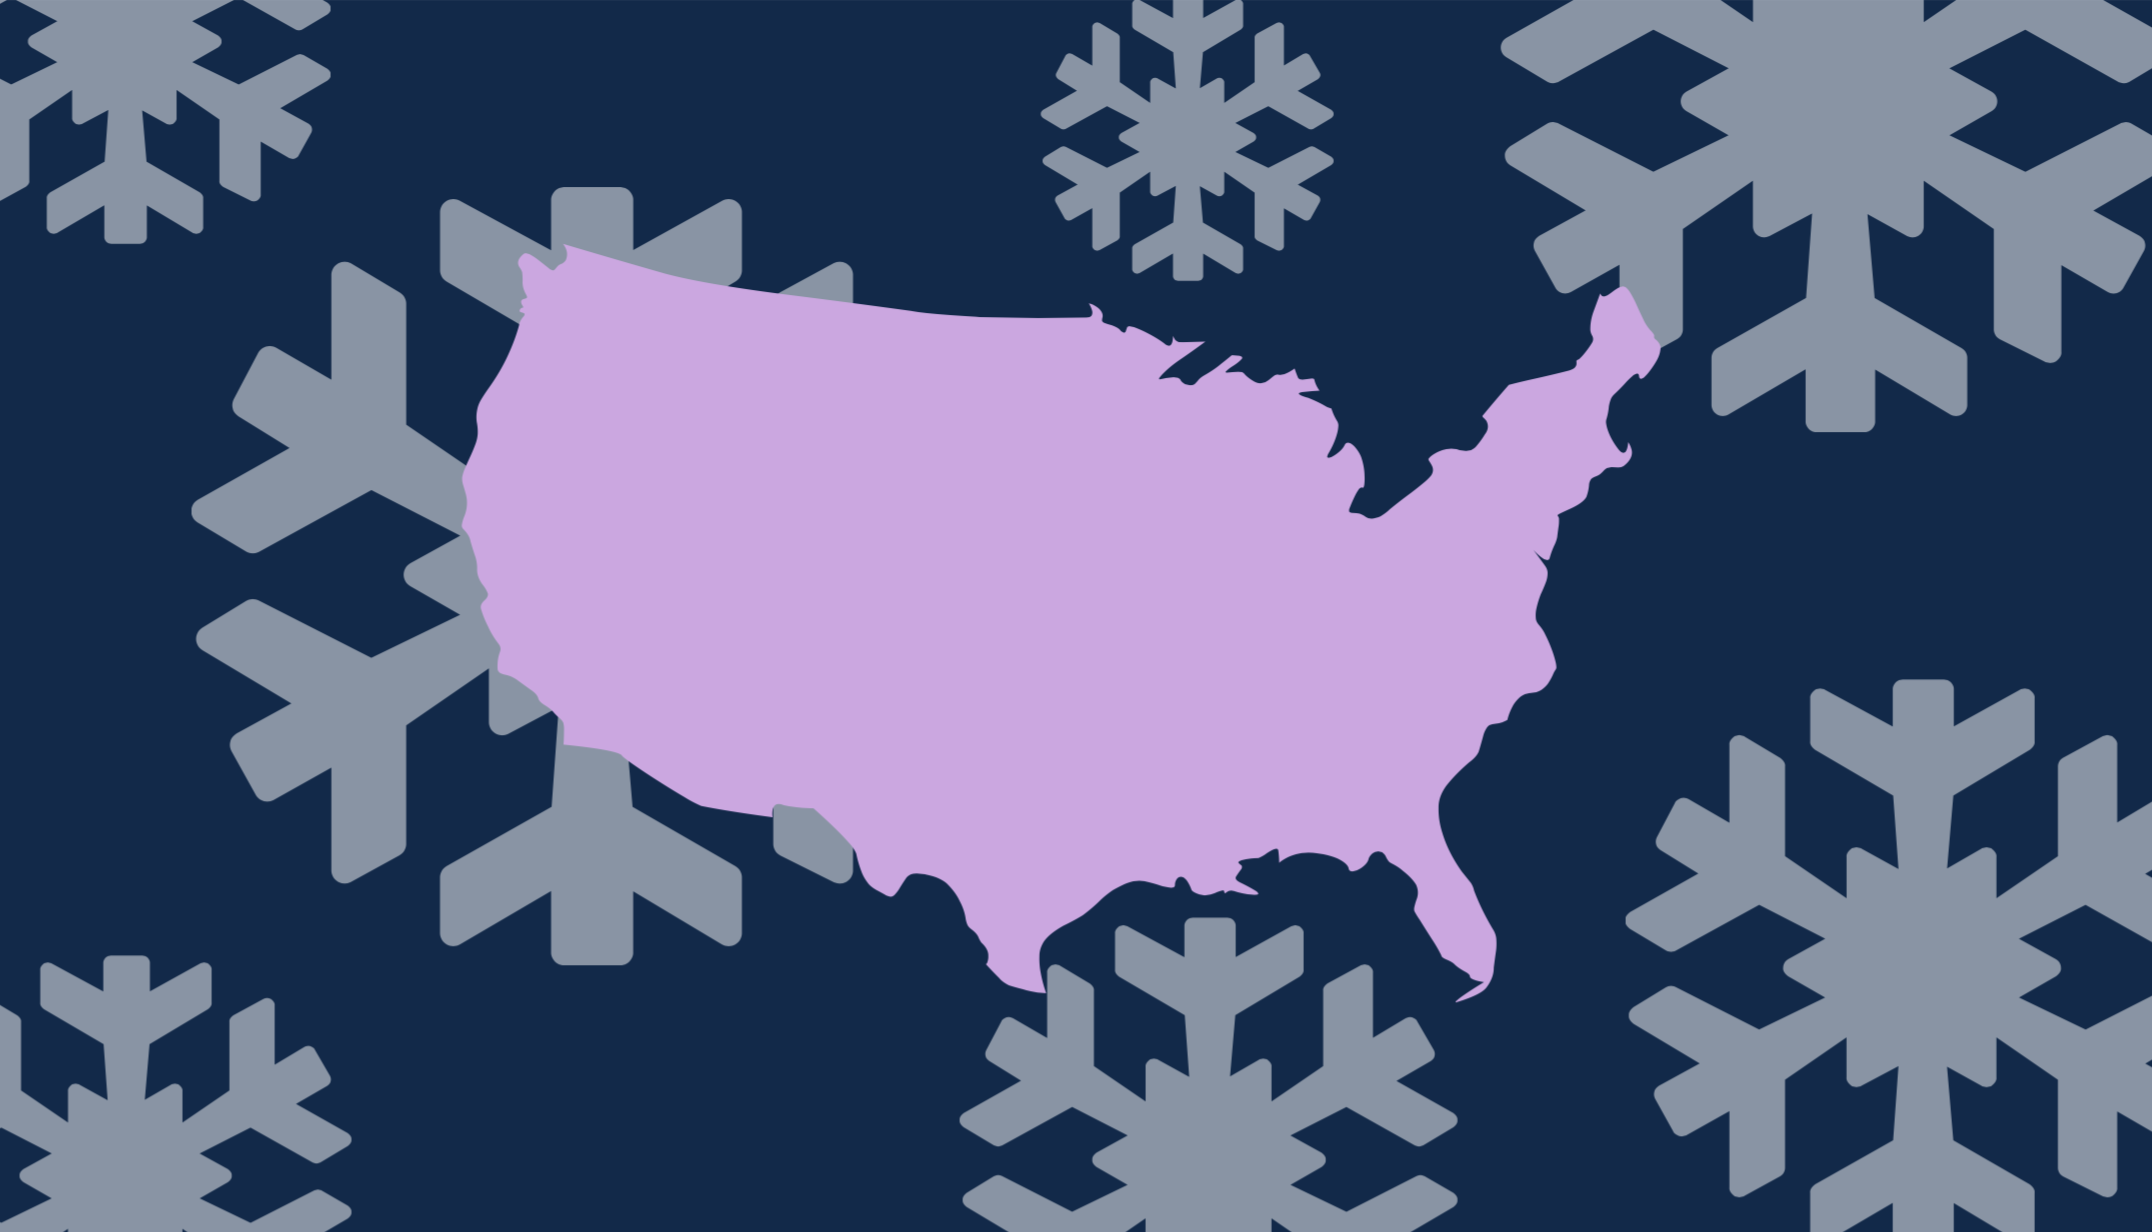 Illustration of a US map surrounded by snowflakes.